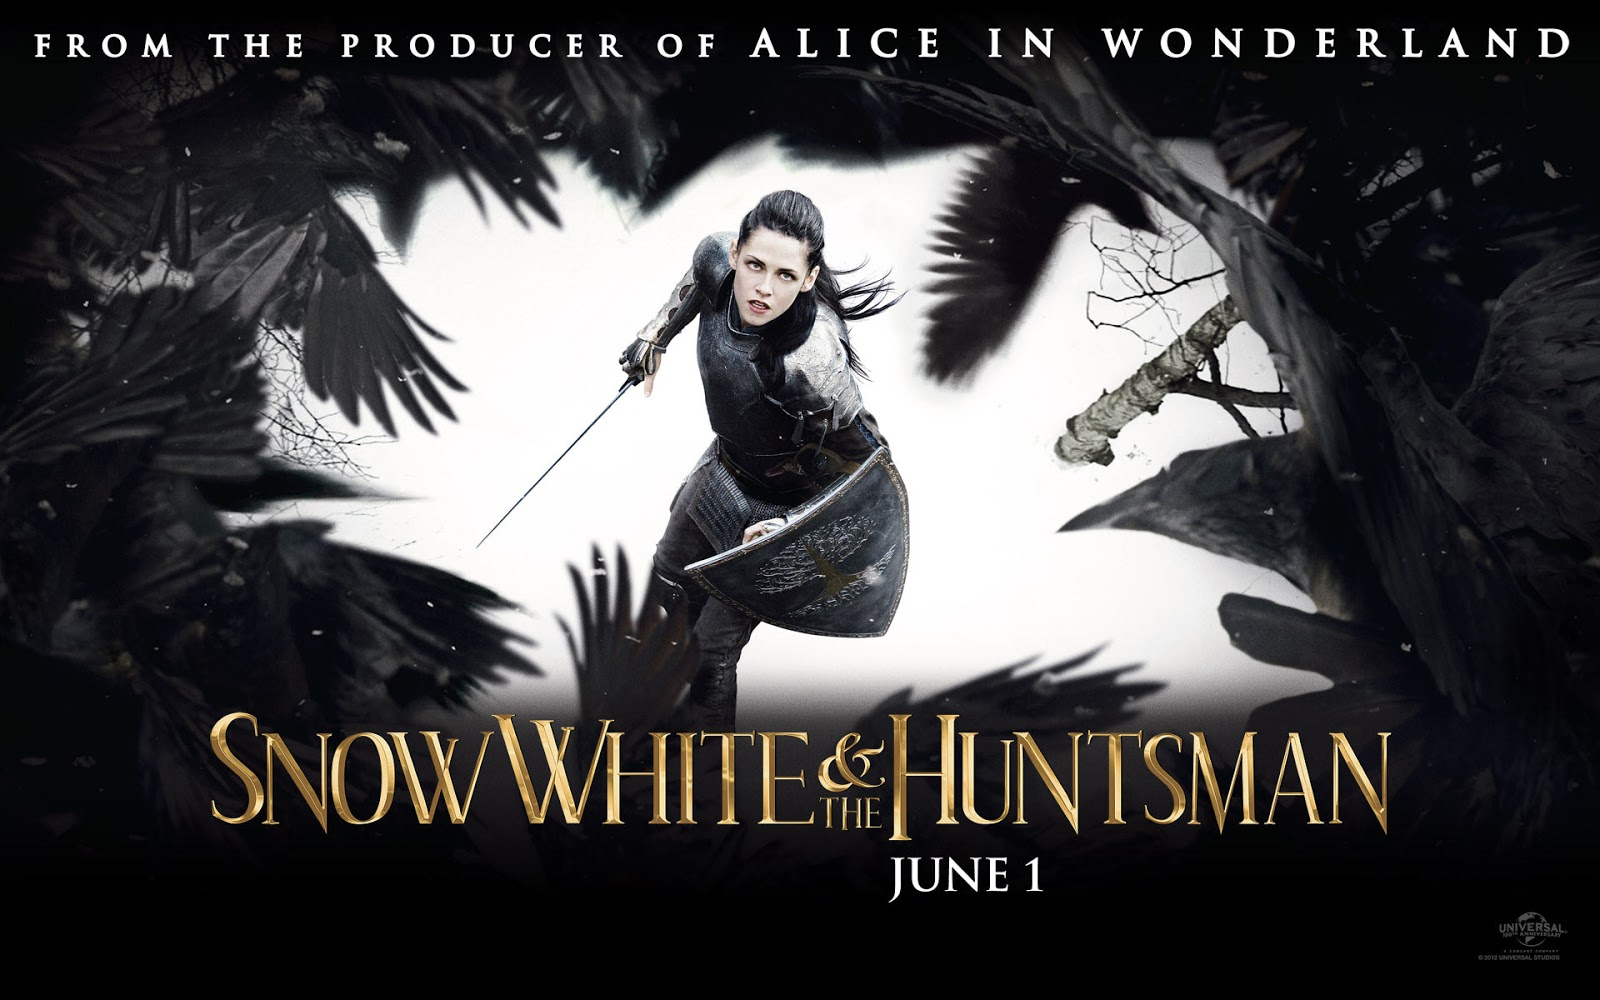 snow white and the huntsman full movie english subtitles free download